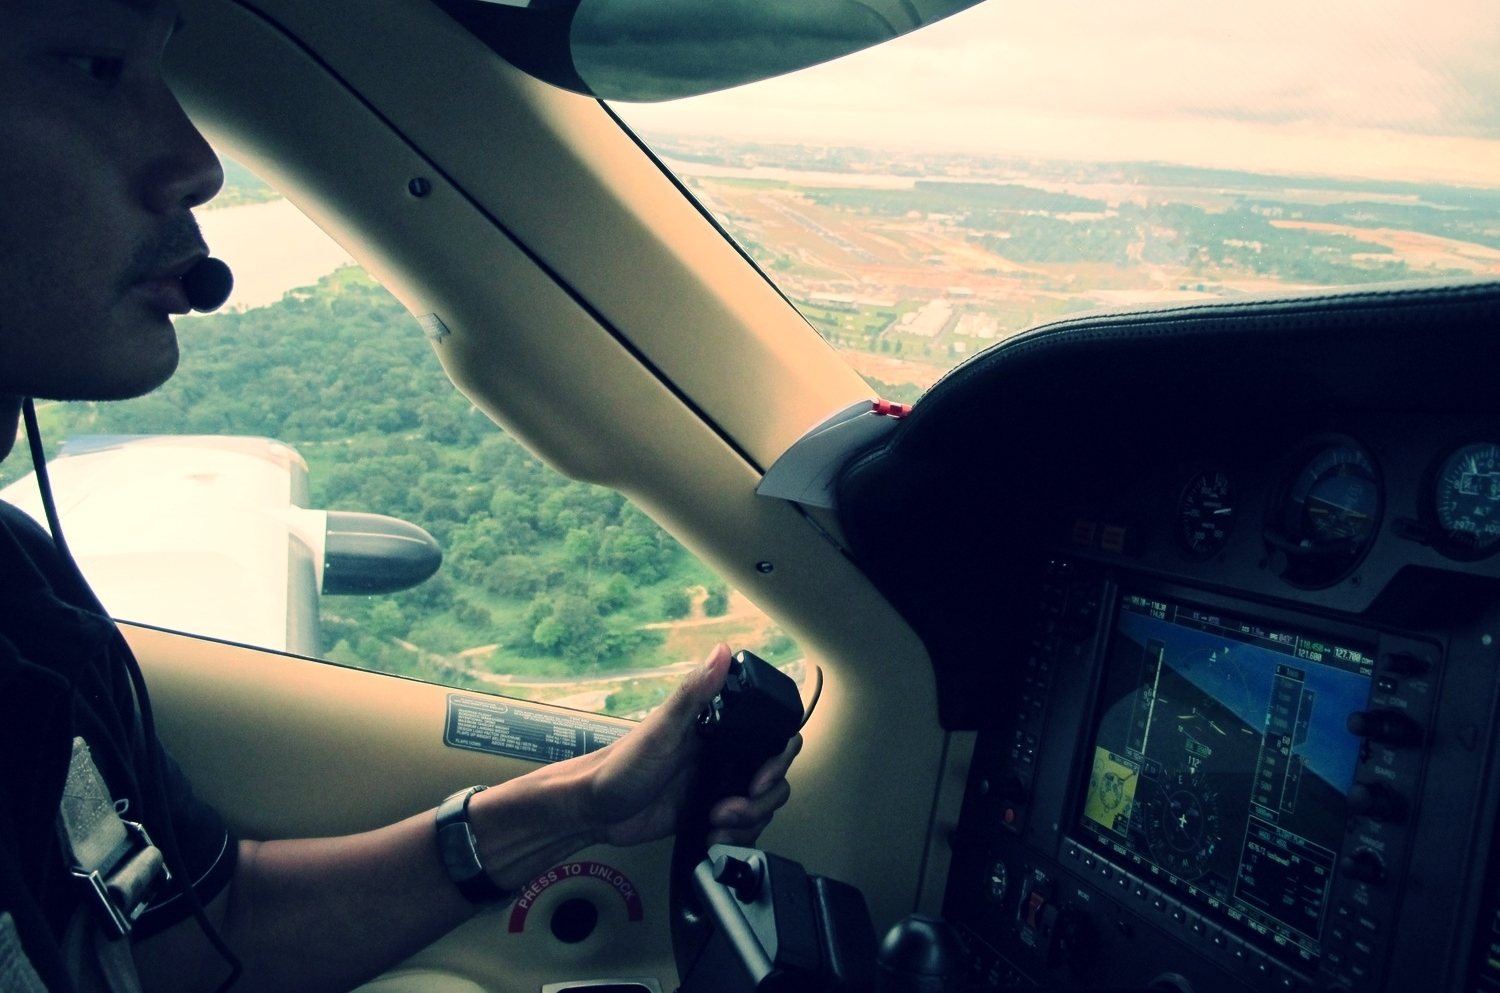 Turboprop and local area familiarization training over Seletar airport, Singapore - ensuring you are always at the top of the game as you enjoy the private aviation lifestyle with your loved ones and friends.